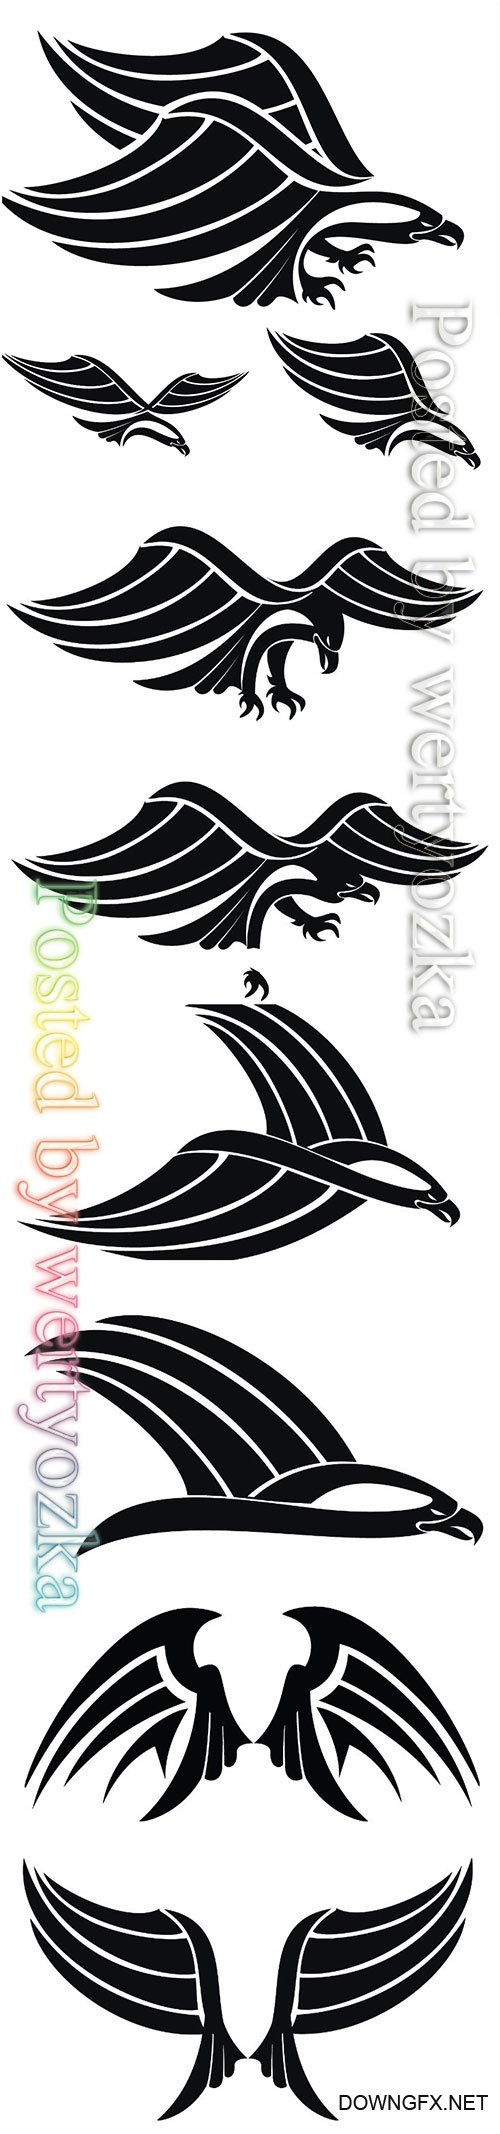 Eagle logos vector illustration